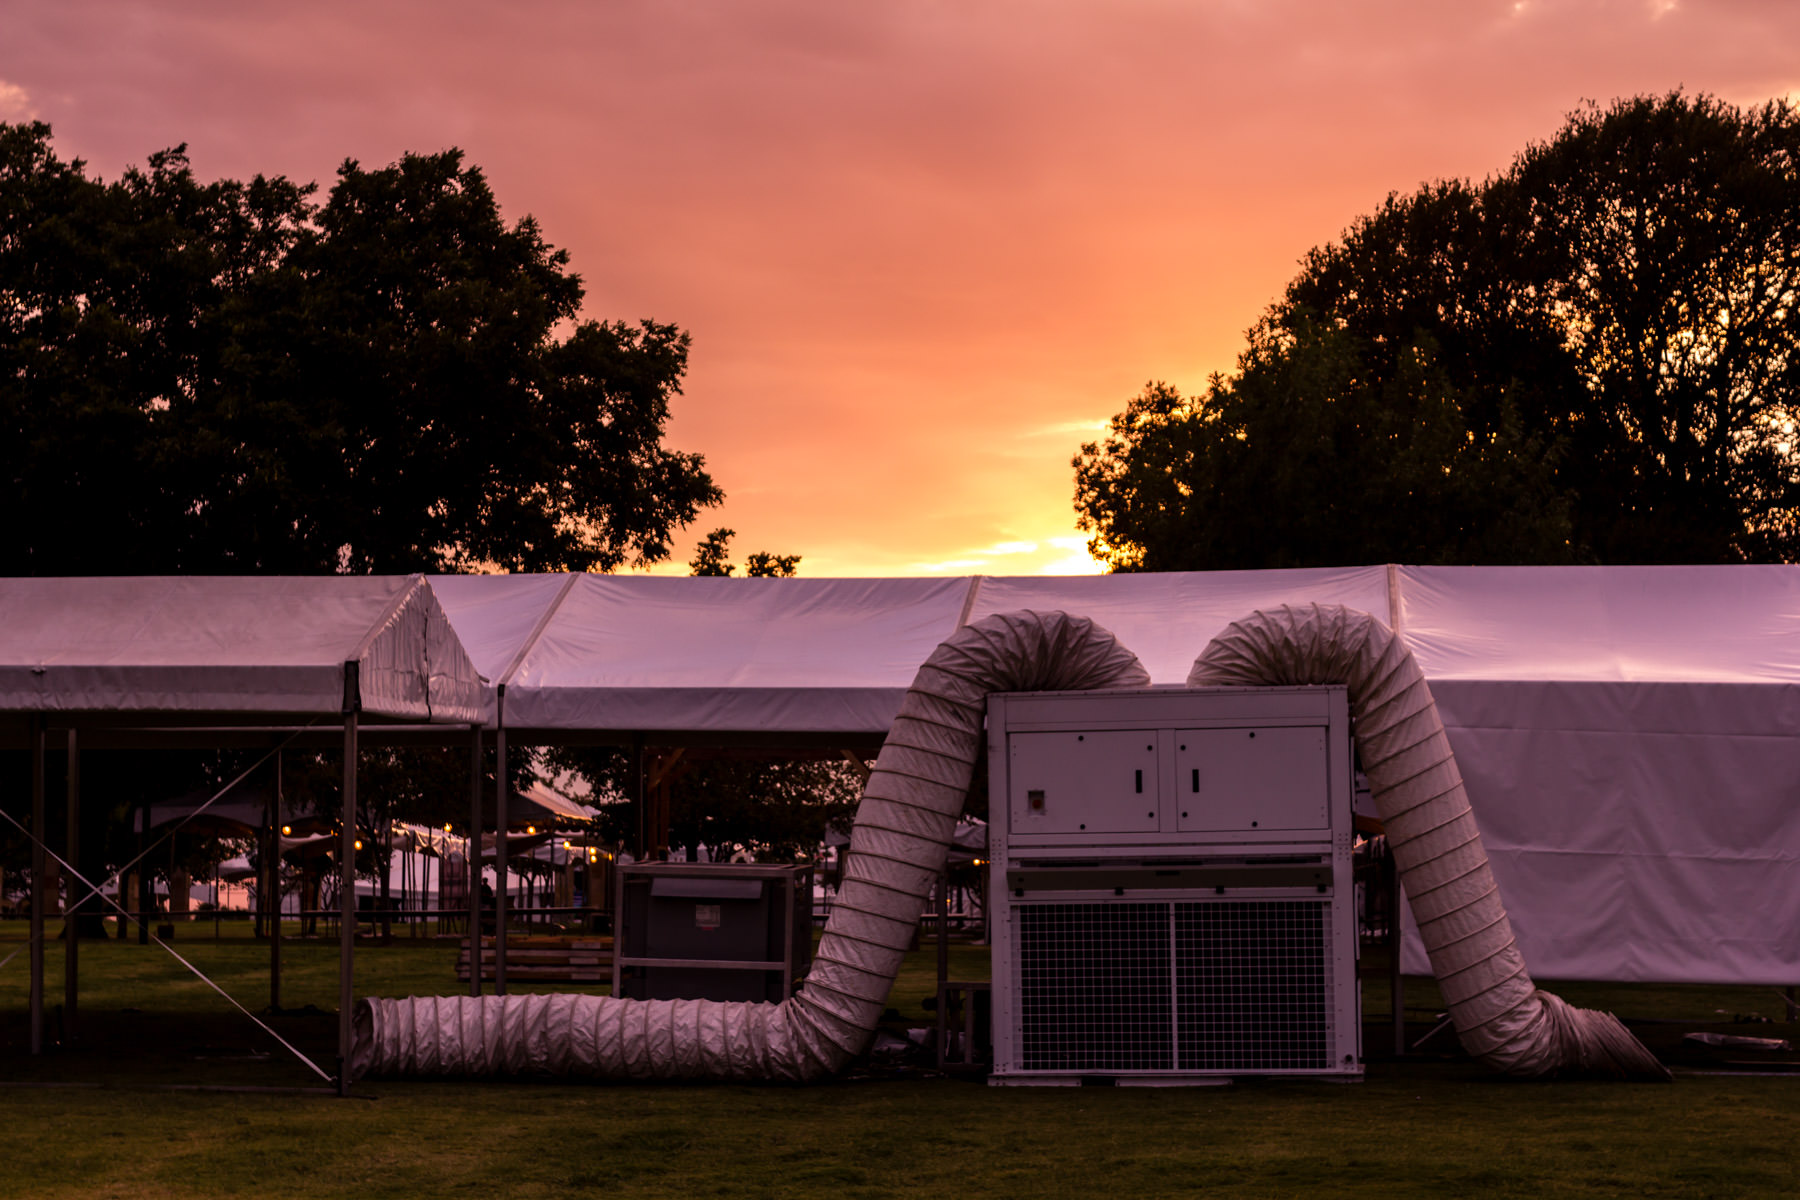 A portable air-conditioning unit being setup to cool Oktoberfest tents at Addison Circle Park, Addison, Texas.